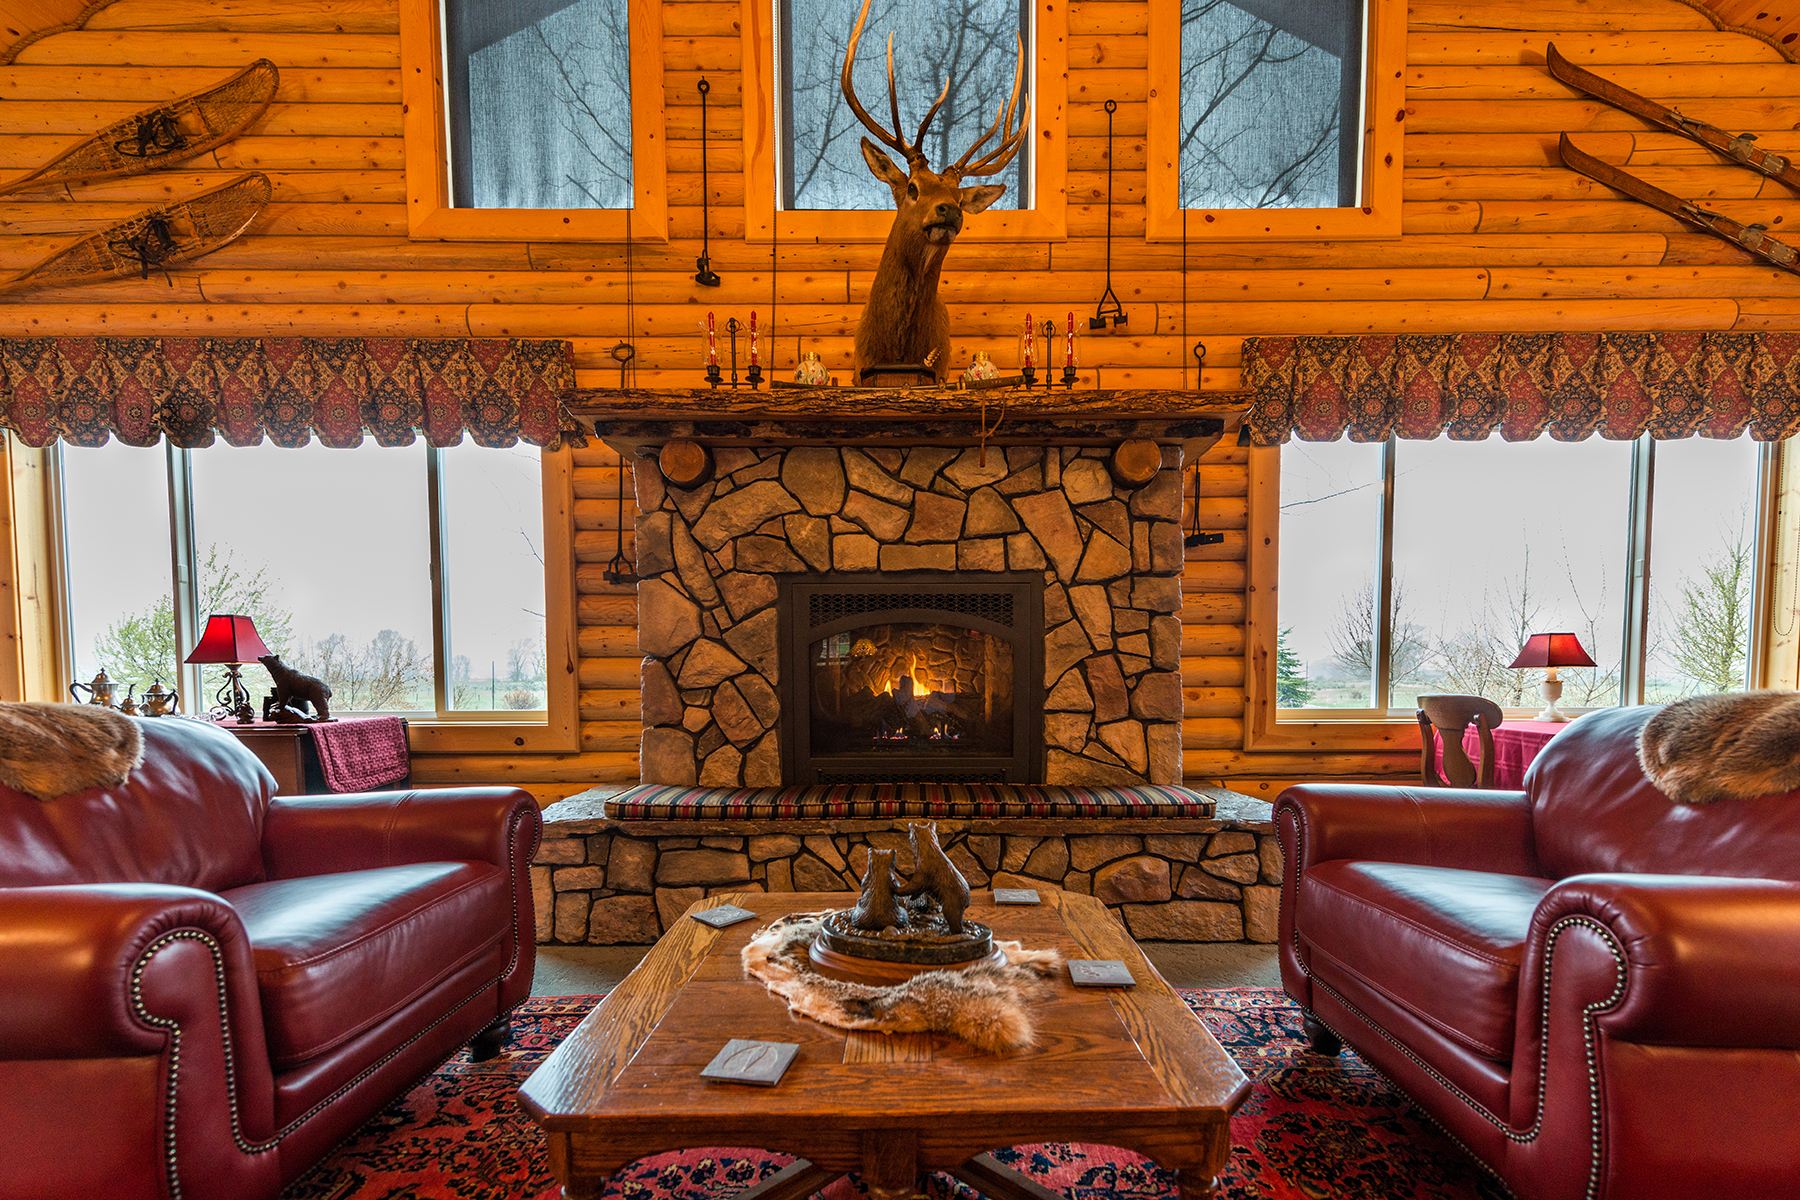 Single Family Home for Sale at Old Irwin Lodge 1591 Old Irwin Rd Irwin, Idaho IWRIN United States